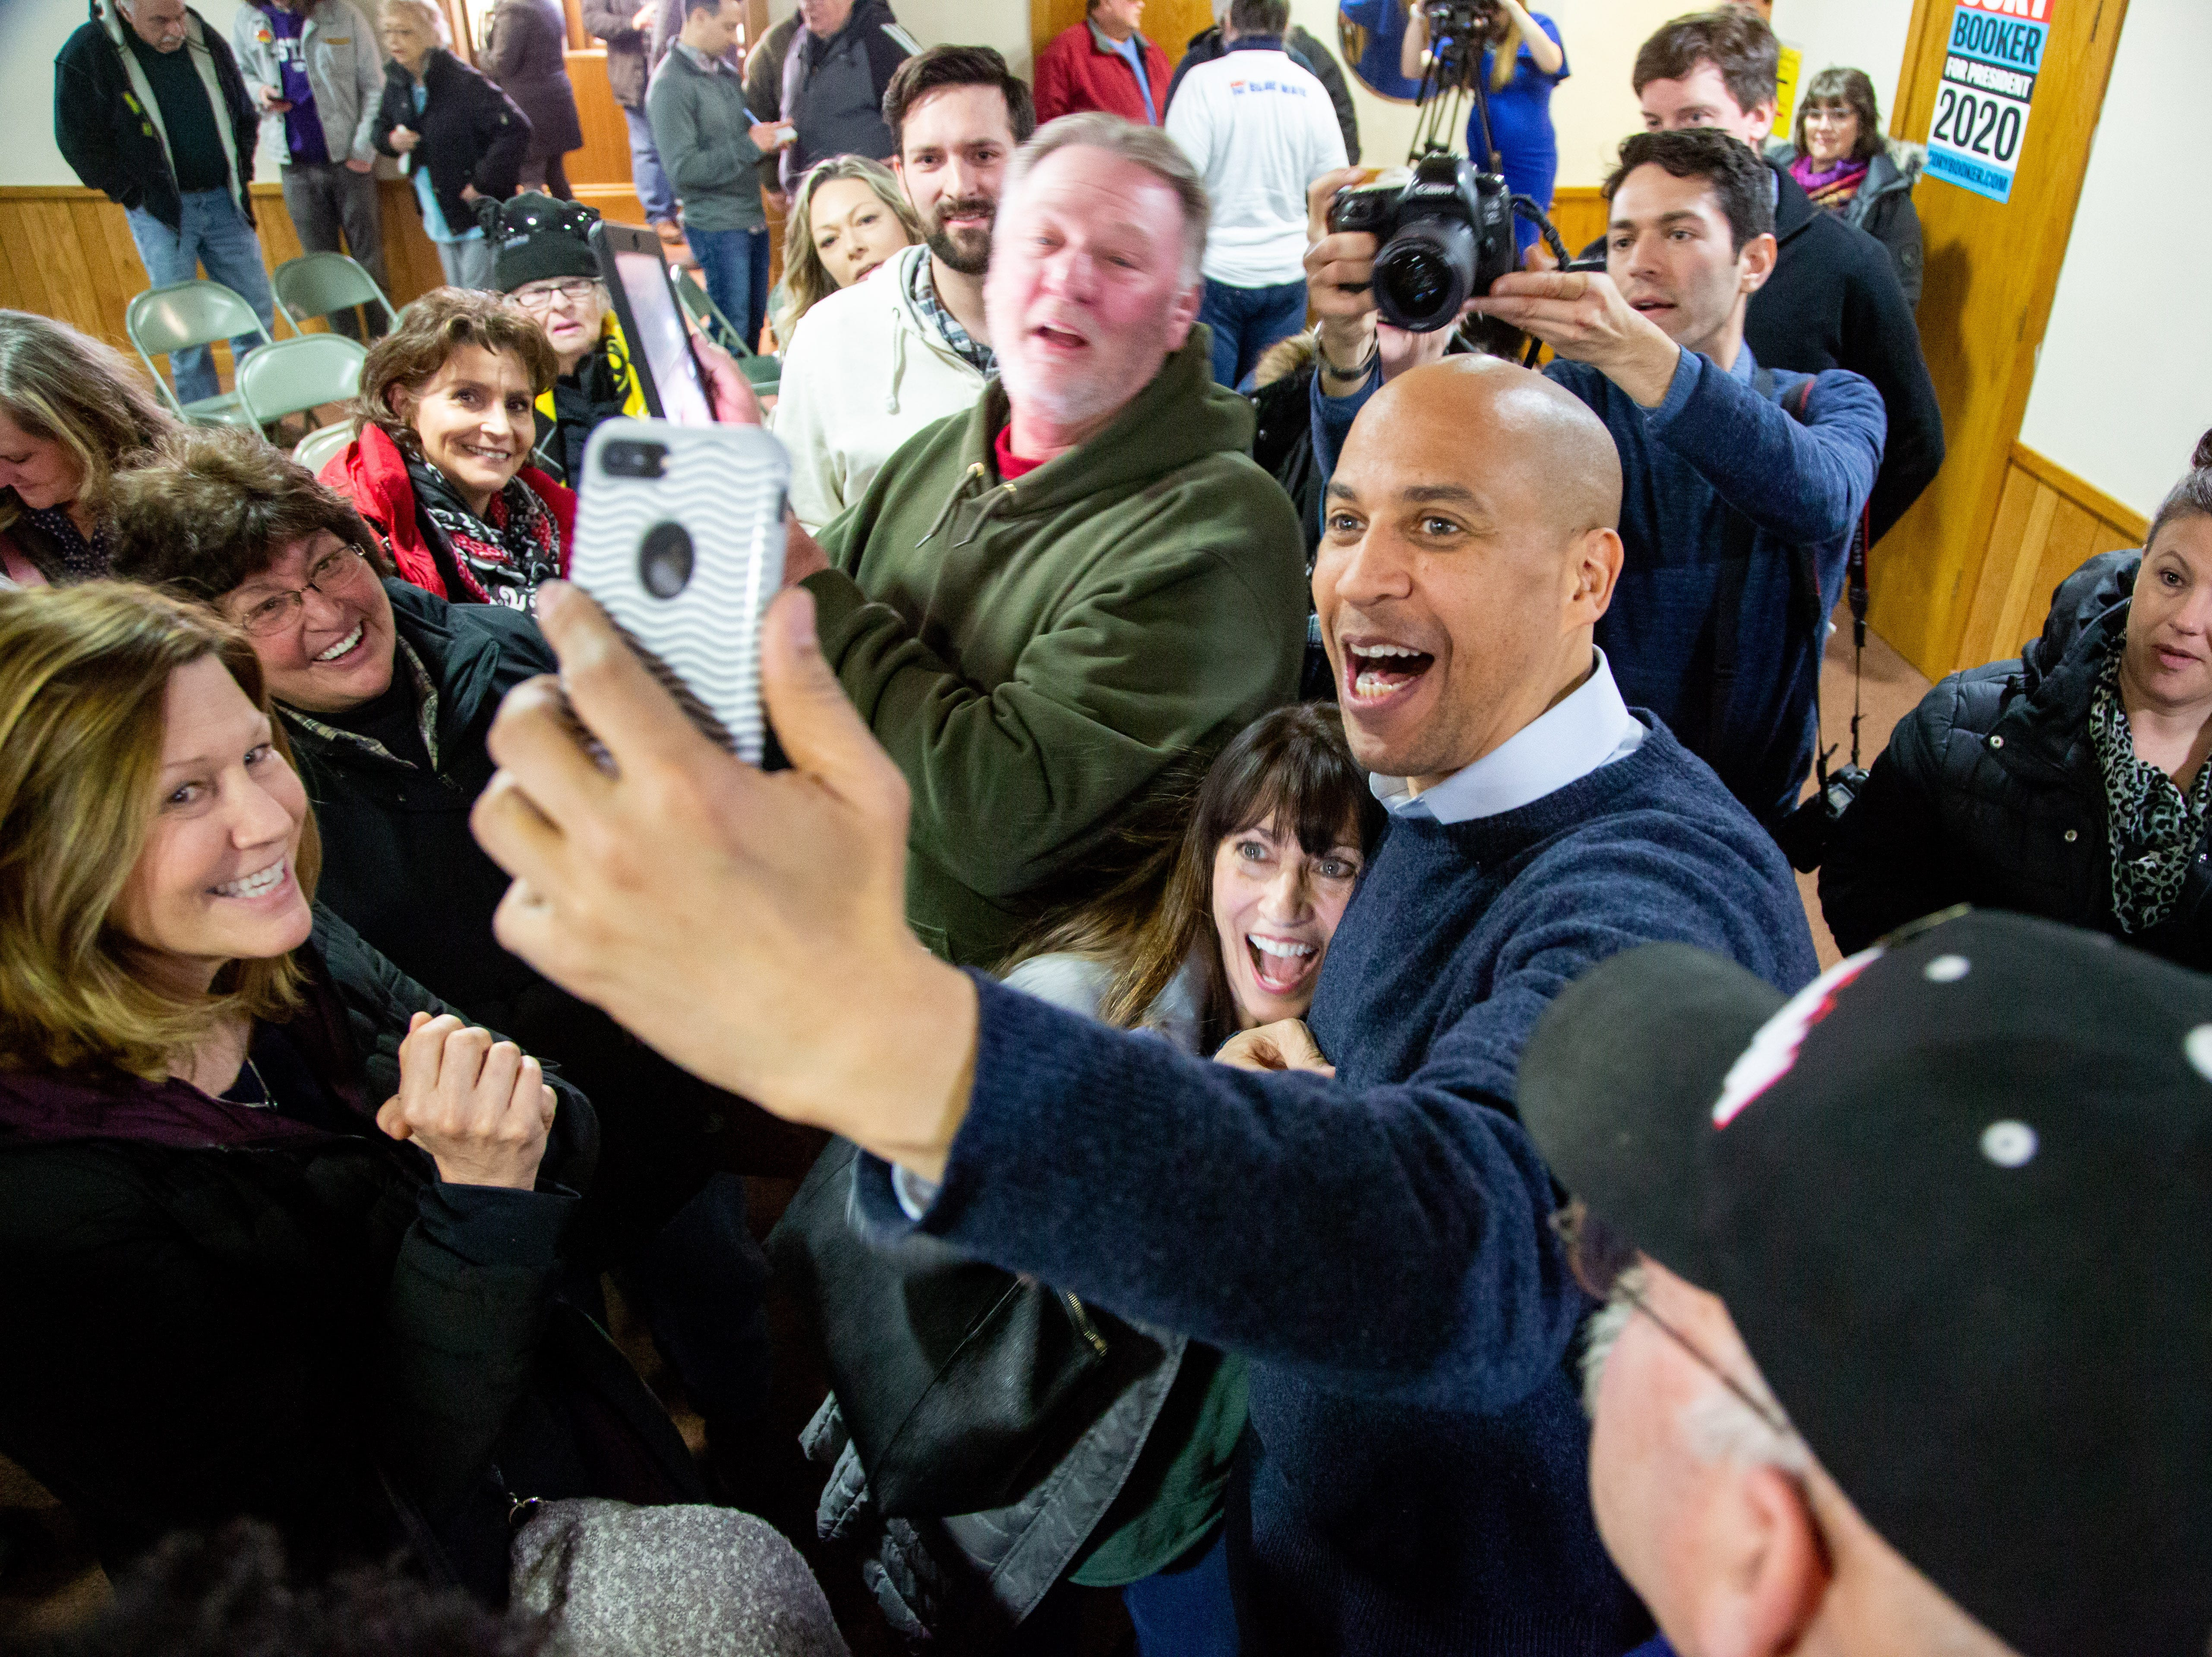 Sen. Cory Booker, D-N.J., takes selfies with the audience after a meet and greet at the First Congregational United Church of Christ, Friday, Feb. 8, 2019, in Mason City, Iowa. Friday, Feb. 8, 2019.